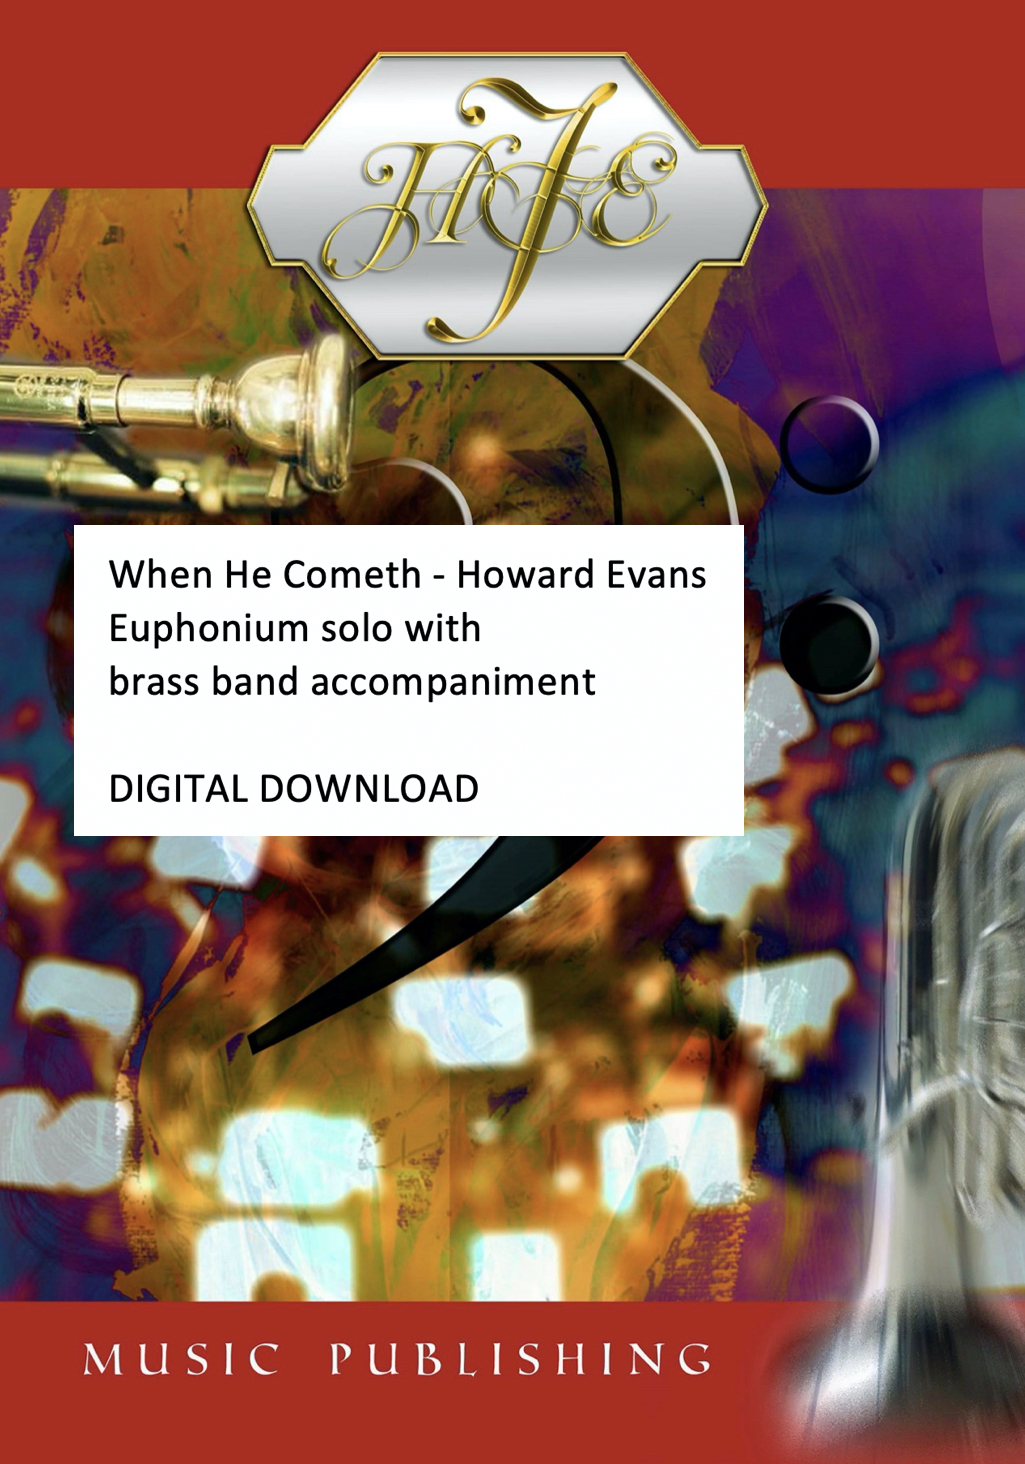 When He Cometh - Howard Evans - Euphonium solo and brass band accompaniment - DIGITAL DOWNLOAD